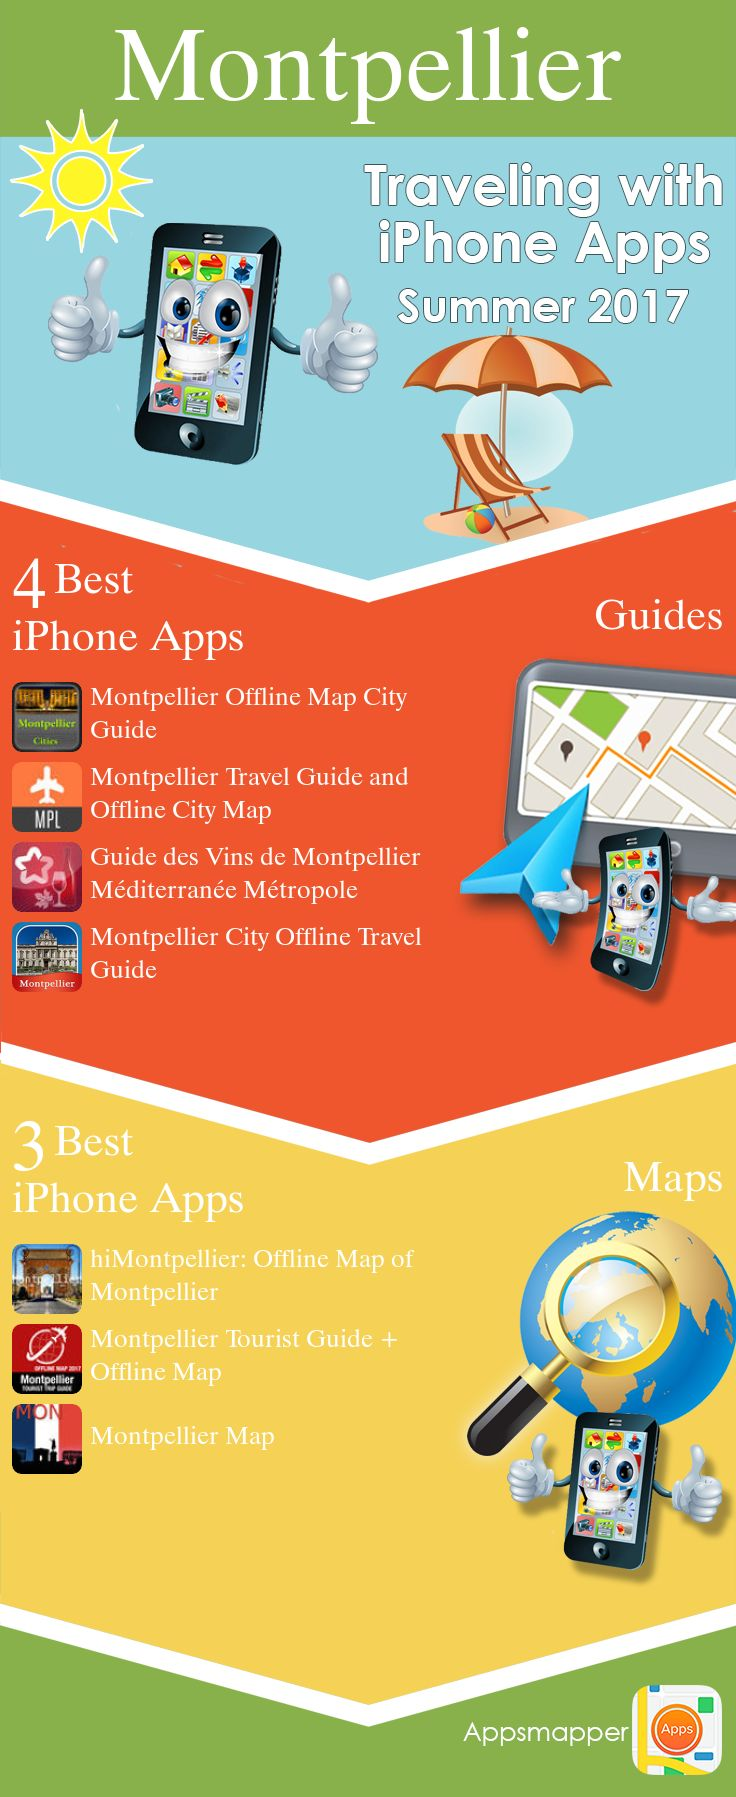 Montpellier iPhone apps: Travel Guides, Maps, Transportation, Biking, Museums, Parking, Sport and apps for Students.